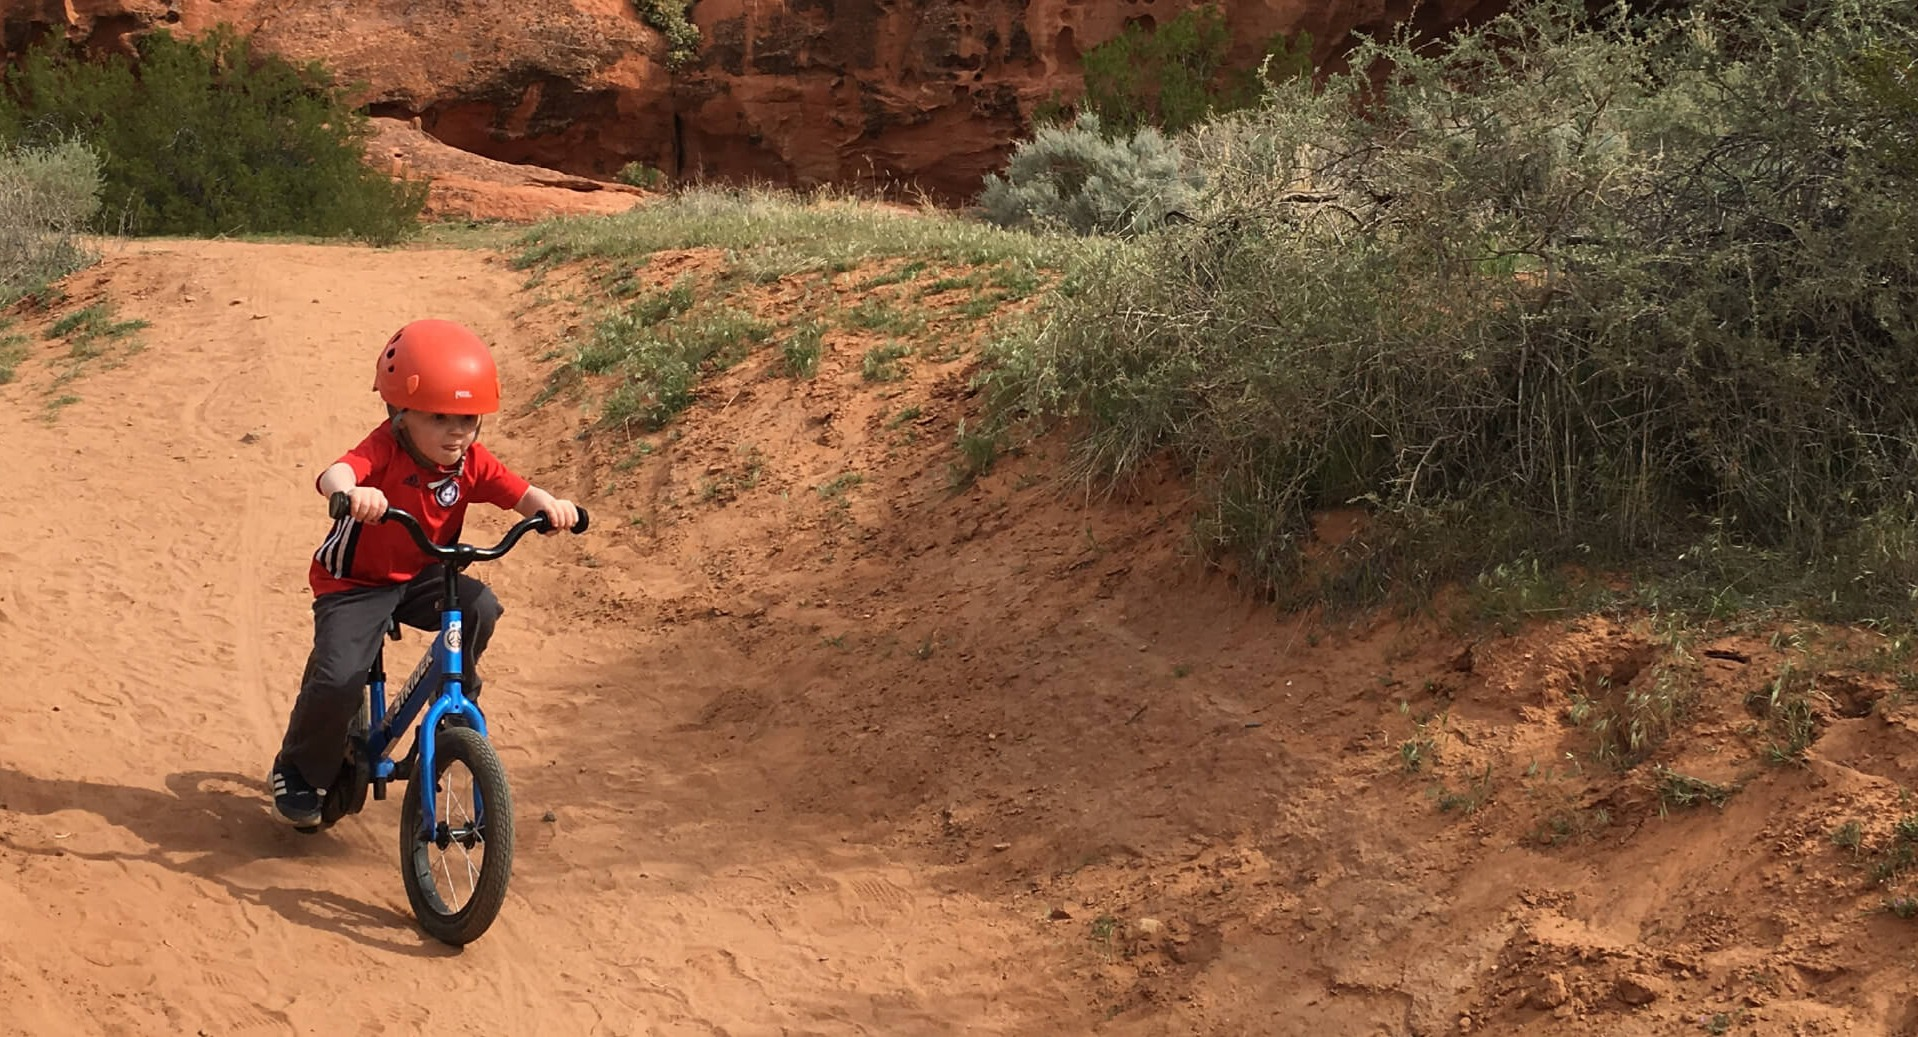 A young child coasts down a red dirt trail on a balance bike